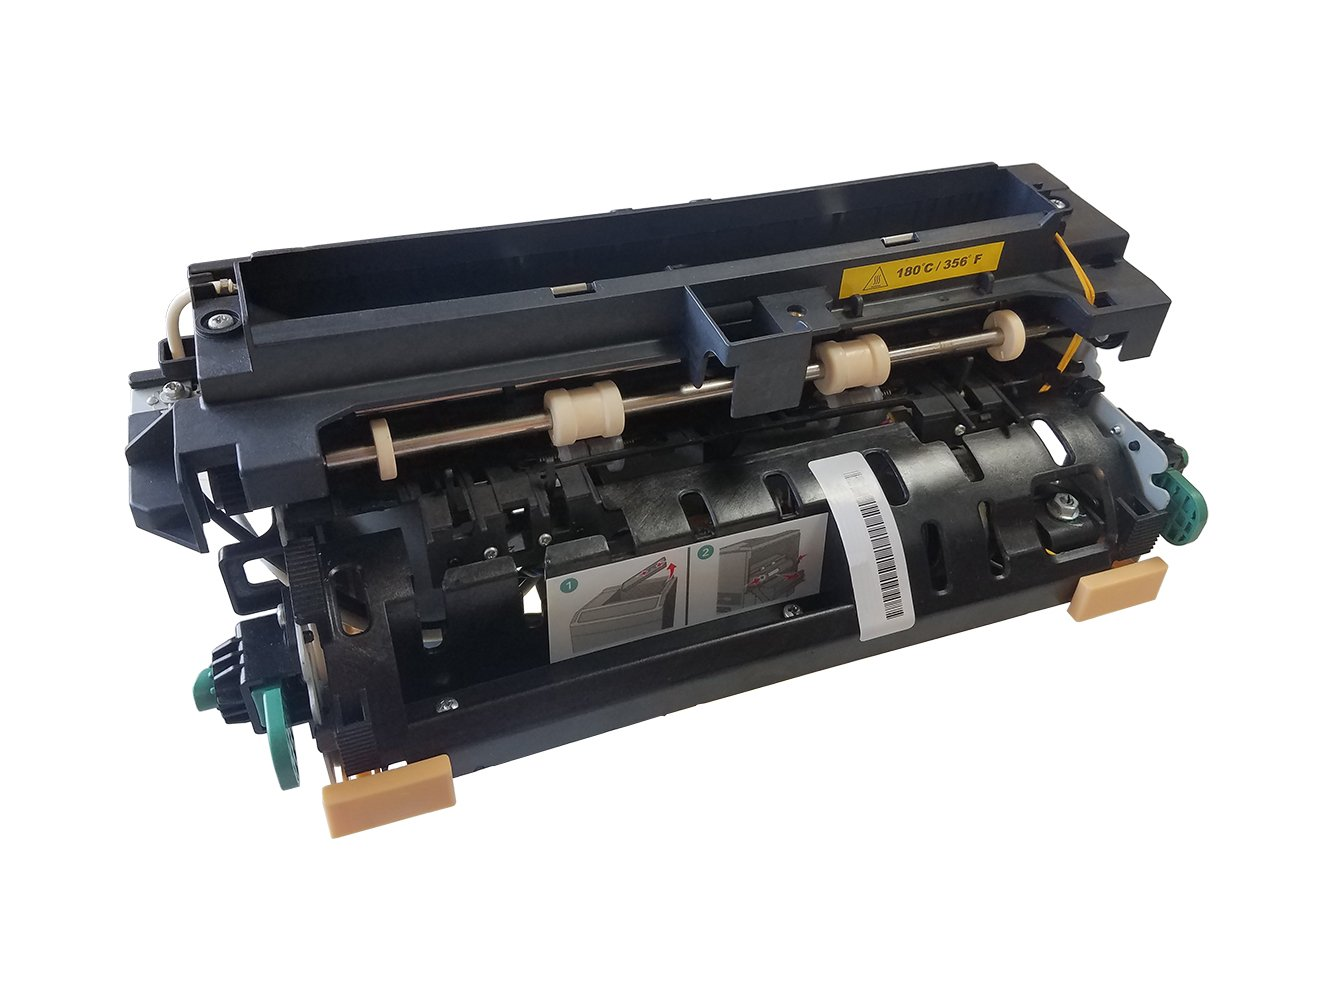 Altru Print 40X4418-AP Fuser Kit for Lexmark T650 / T652 / T654 / T656 / X652 / X654 / X656 / X658 (110V) Also for InfoPrint 39V3600 and Dell 330-6967 by Altru Print